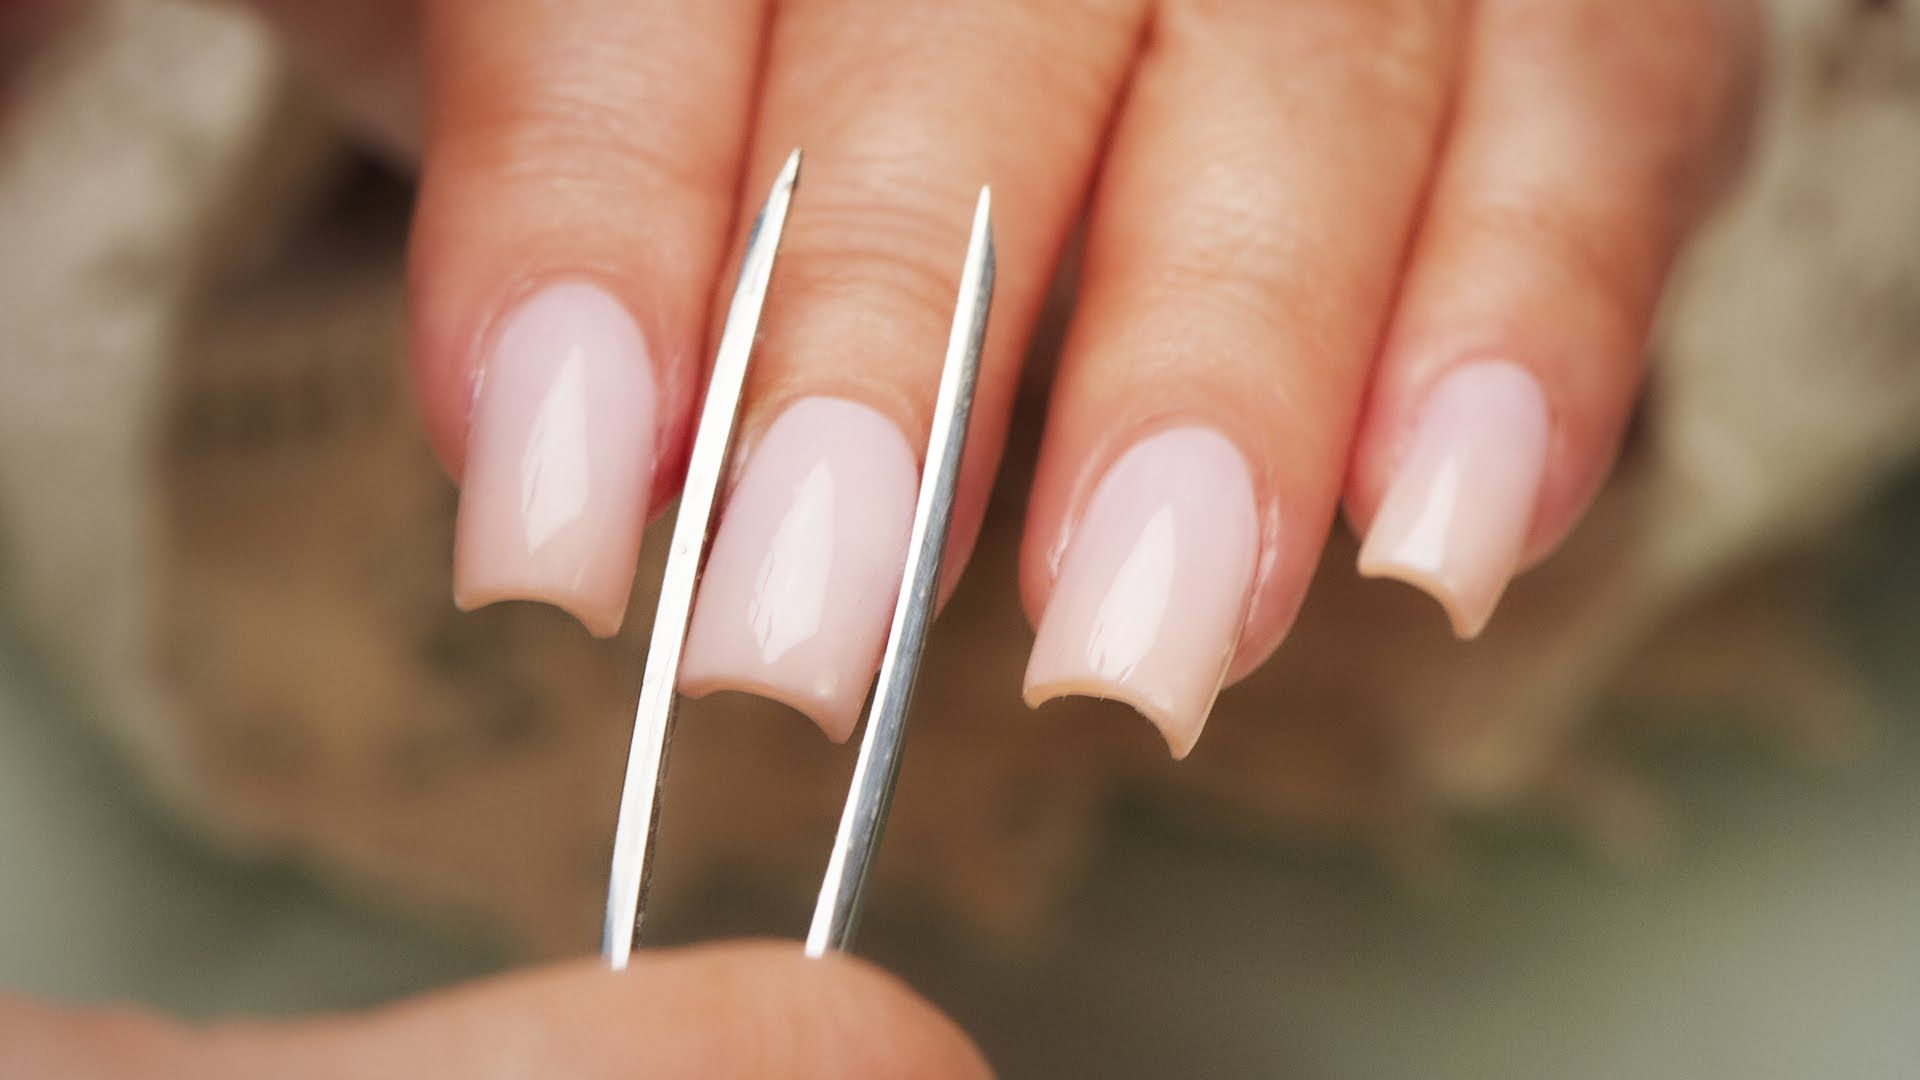 Pinching Acrylic Nails - Step by Step Tutorial | How To Videos on ...